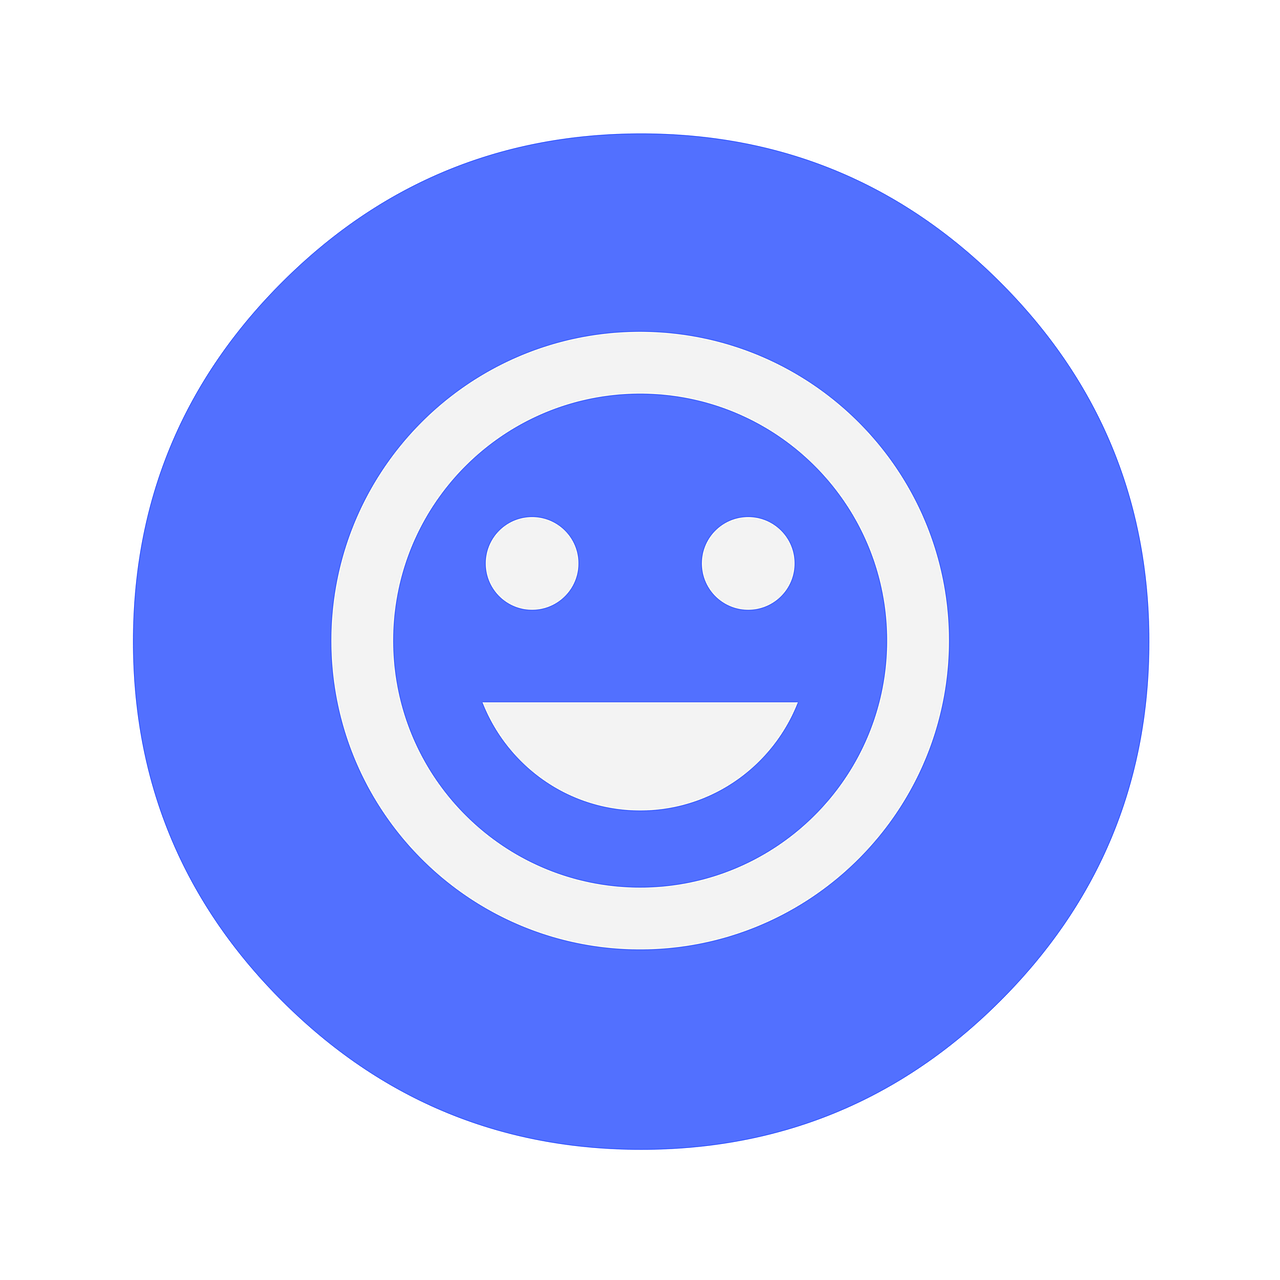 Icon Happy Customer If You Want To Learn How To Get Insane Google Rankings Https Www Web Dimensions Net B2b Vodafone Logo Pinterest Logo Content Marketing